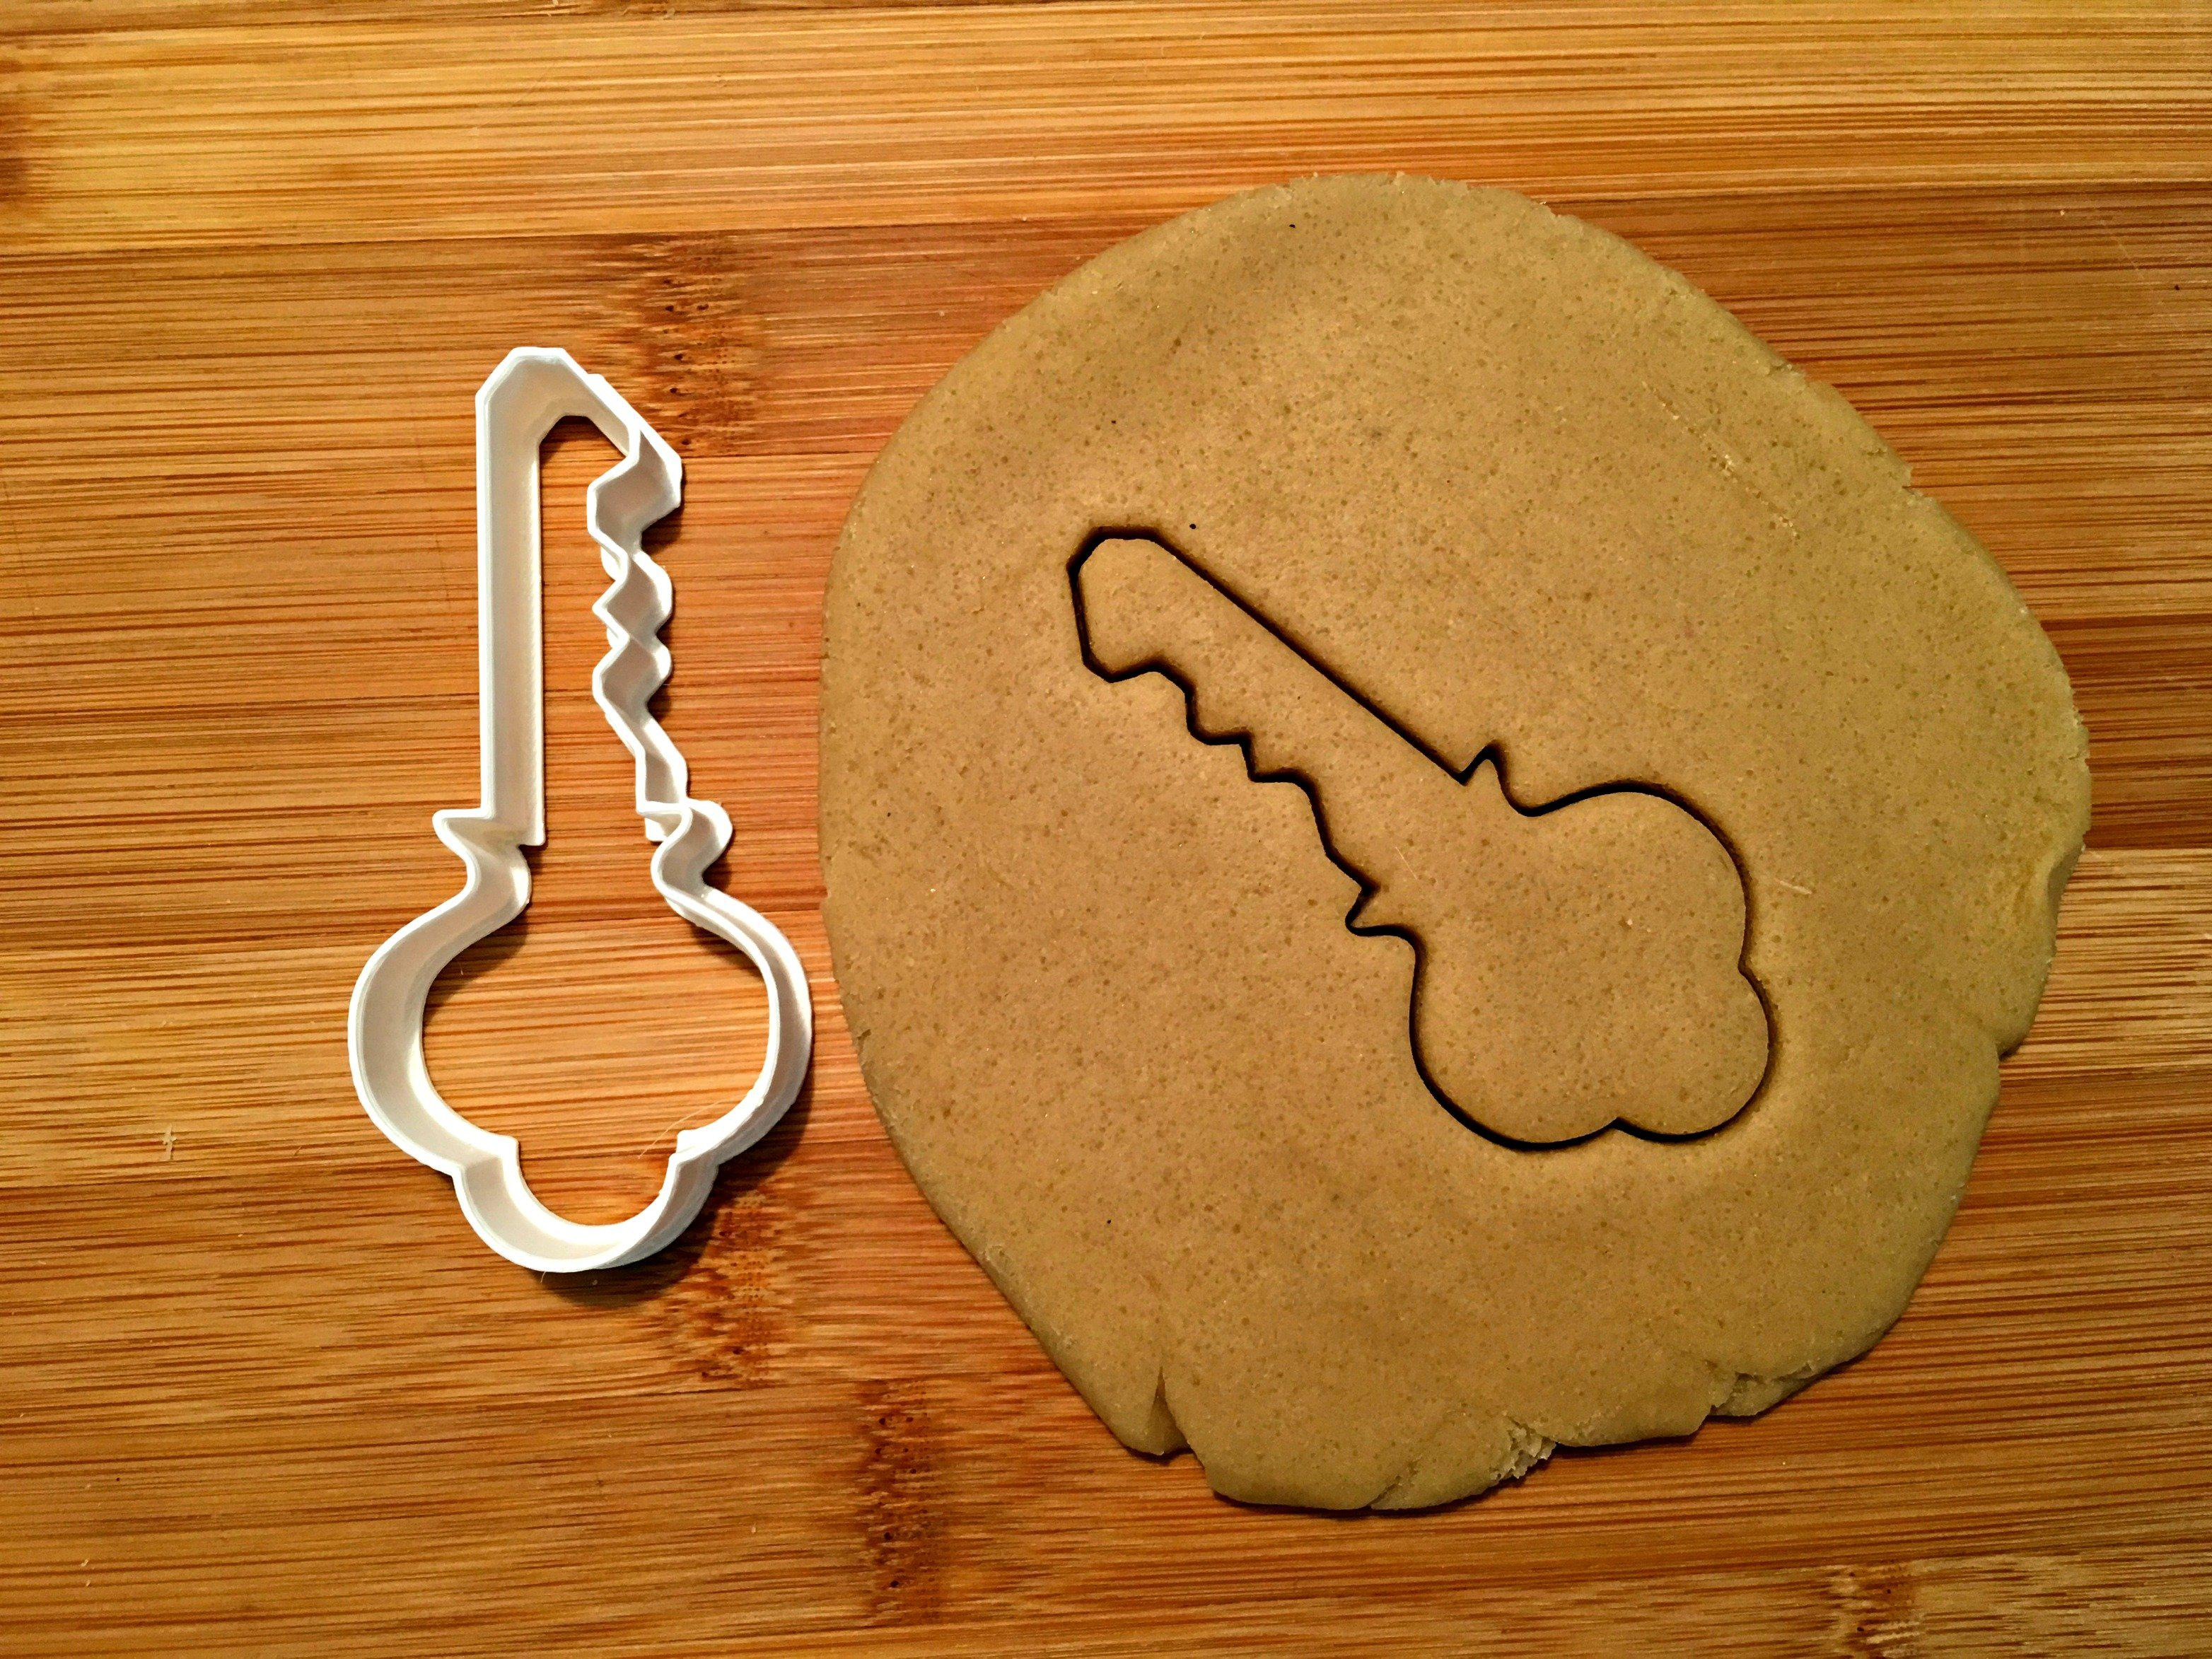 Ornate Key Cookie Cutter/Dishwasher Safe